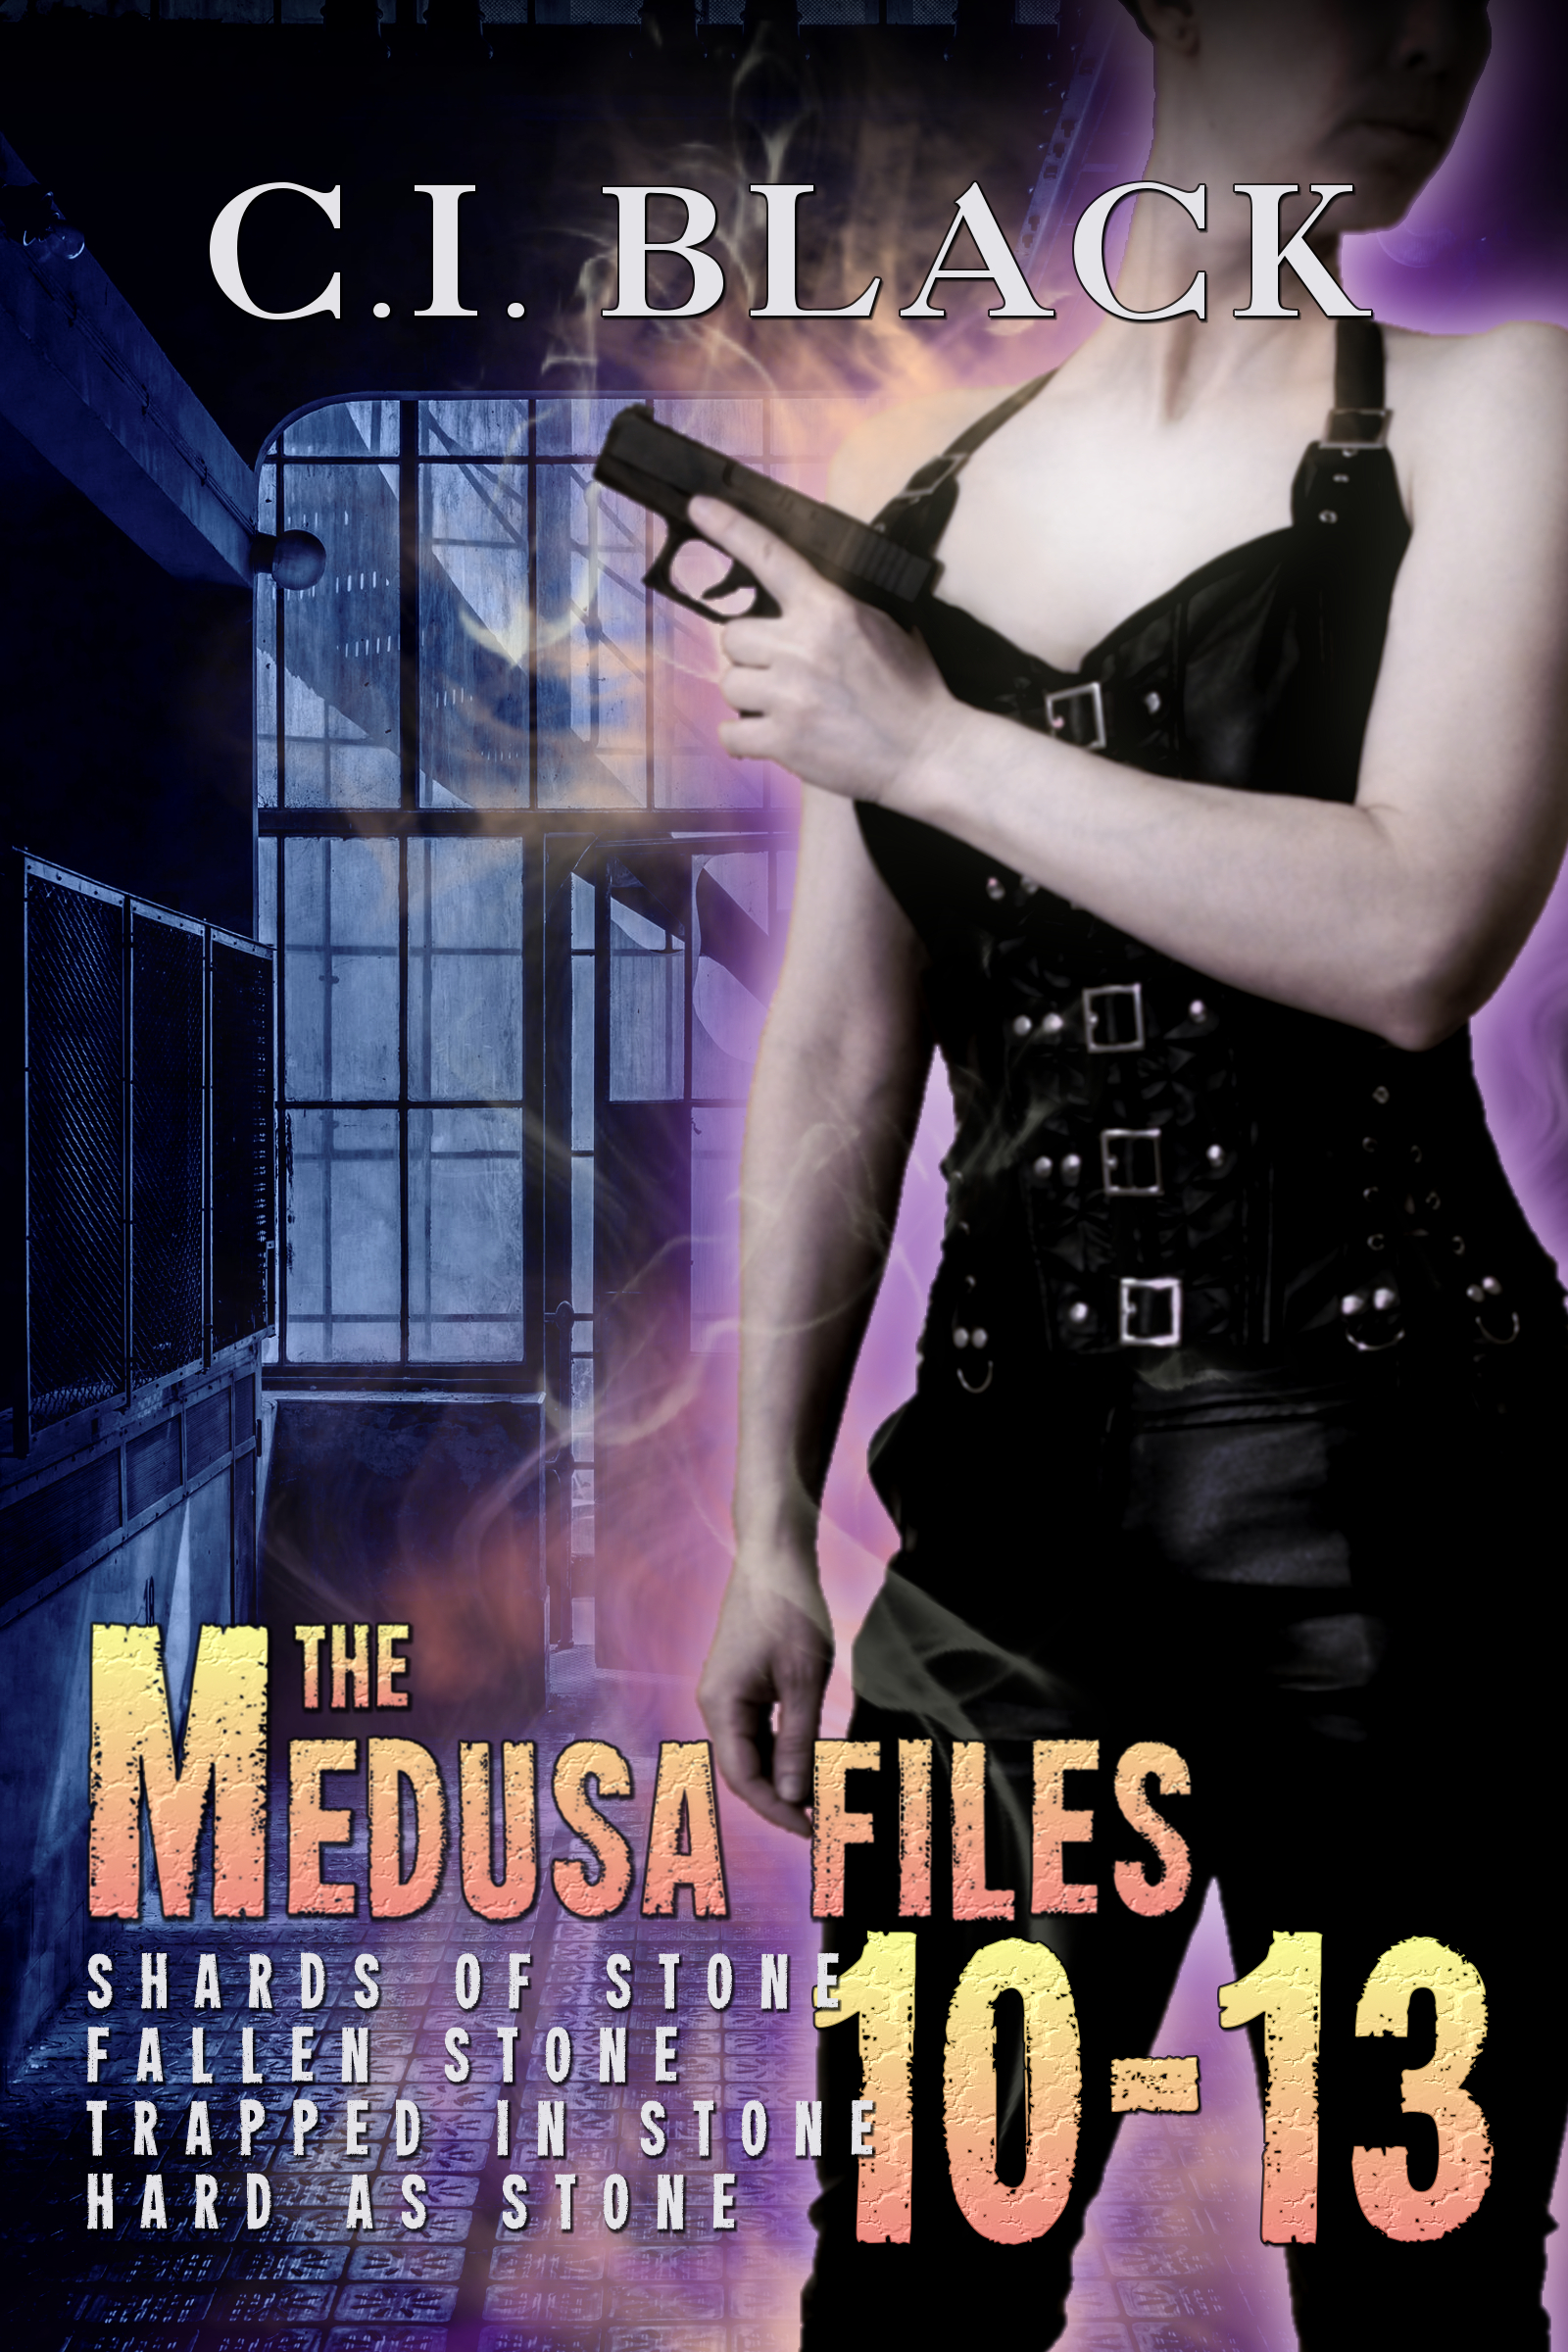 Medusa Files Collection 10 11 12 13 an urban fantasy / paranormal romance series by C.I. Black